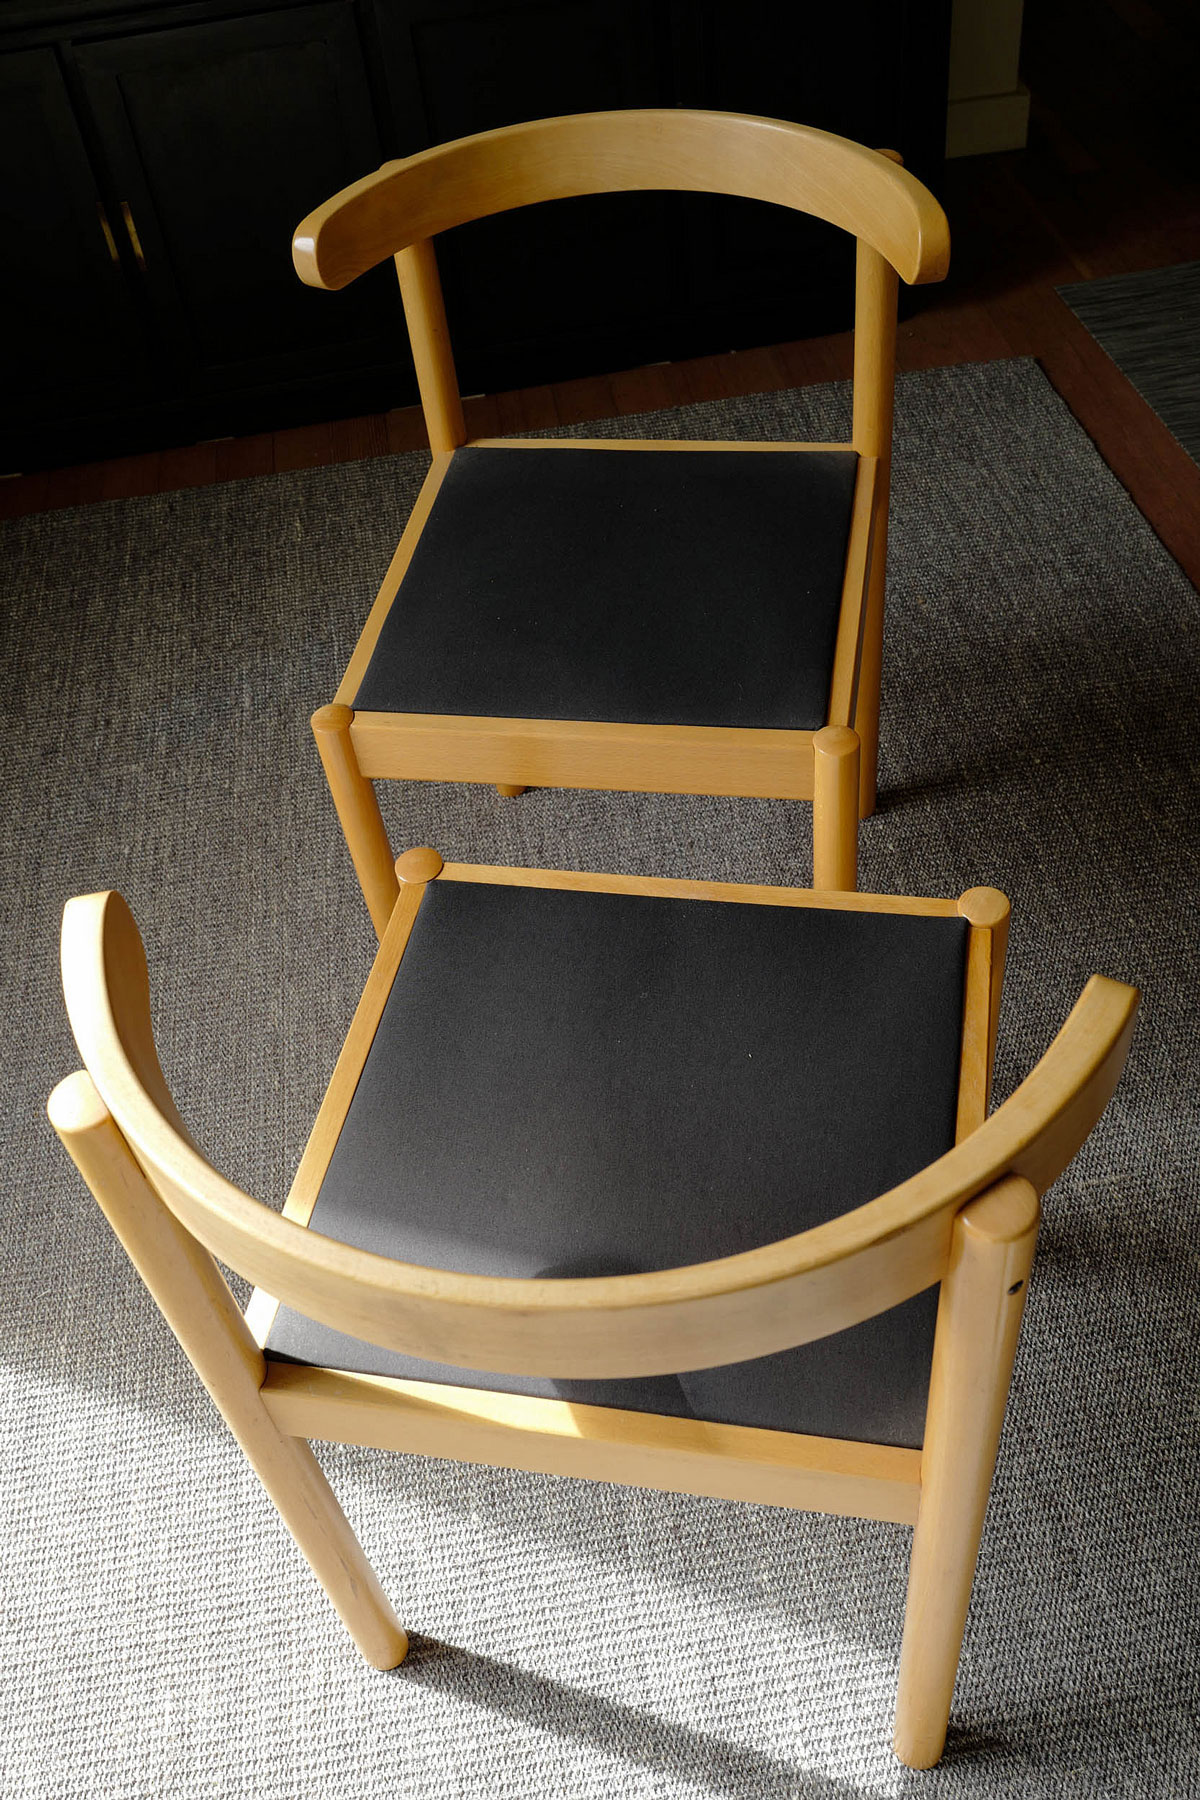 Two chairs available. (click to enlarge)